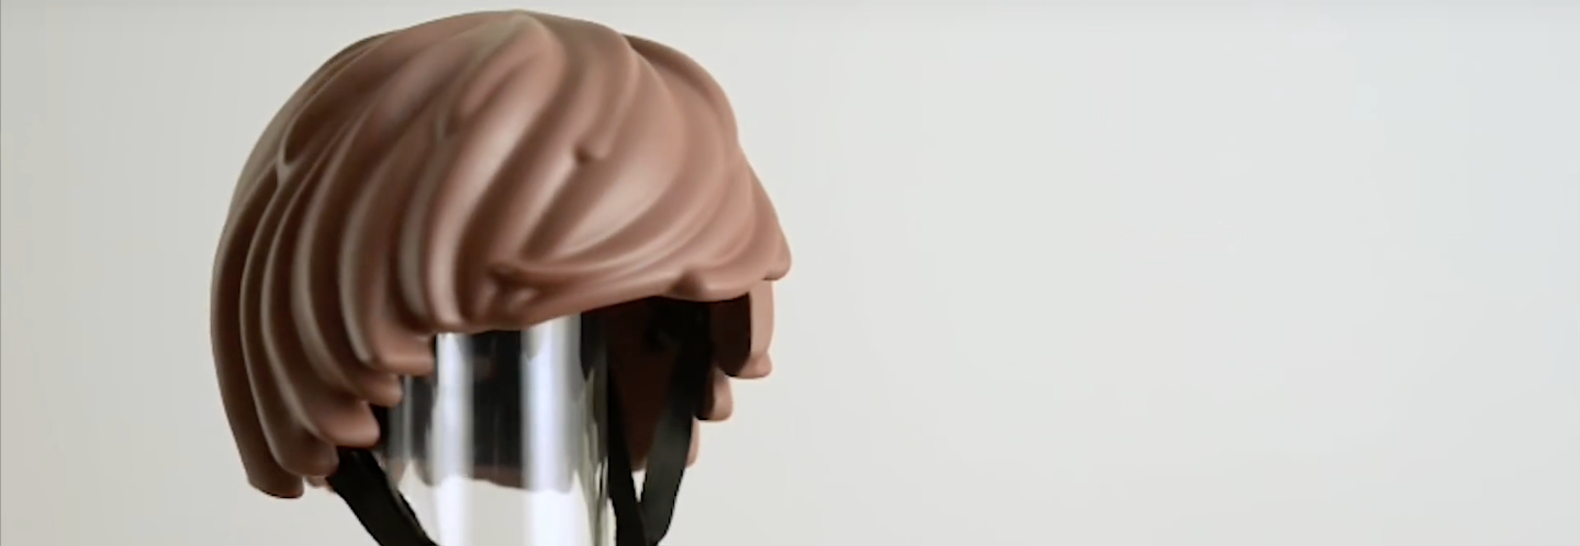 3D-printed Playmobil hair helmet makes bike safety more fun for kids